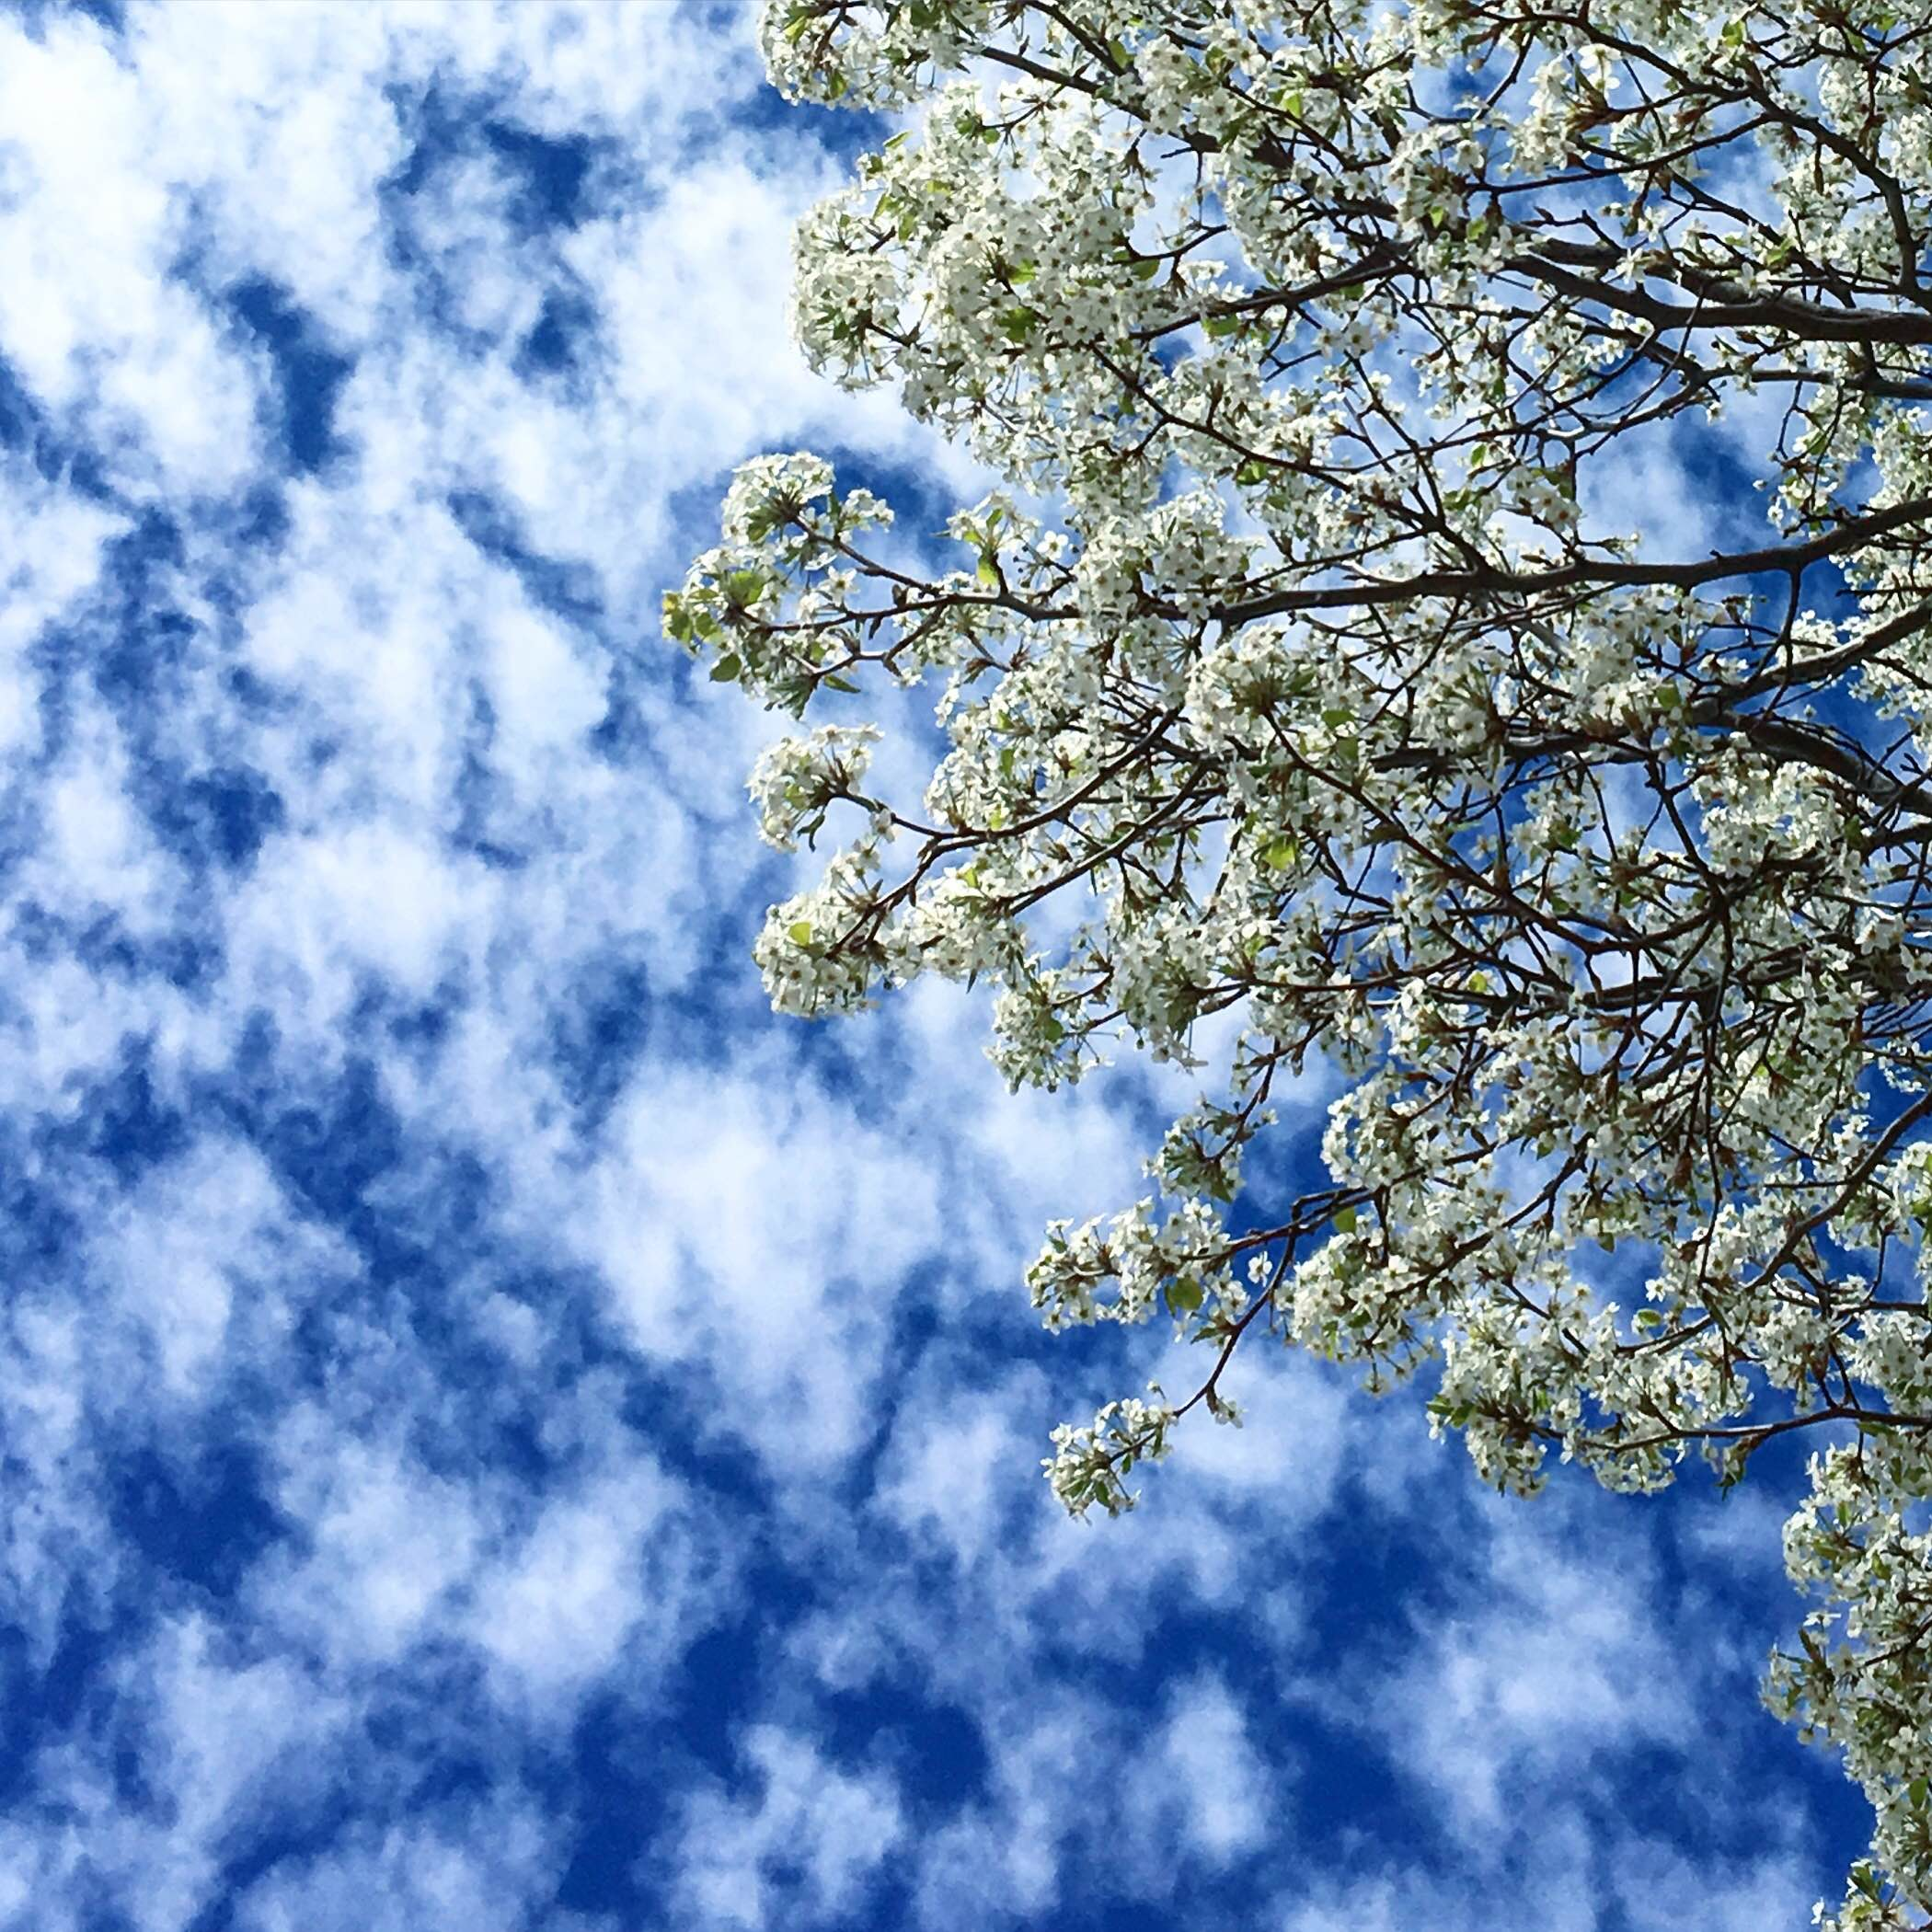 Spring Blossoms and Blue Skies